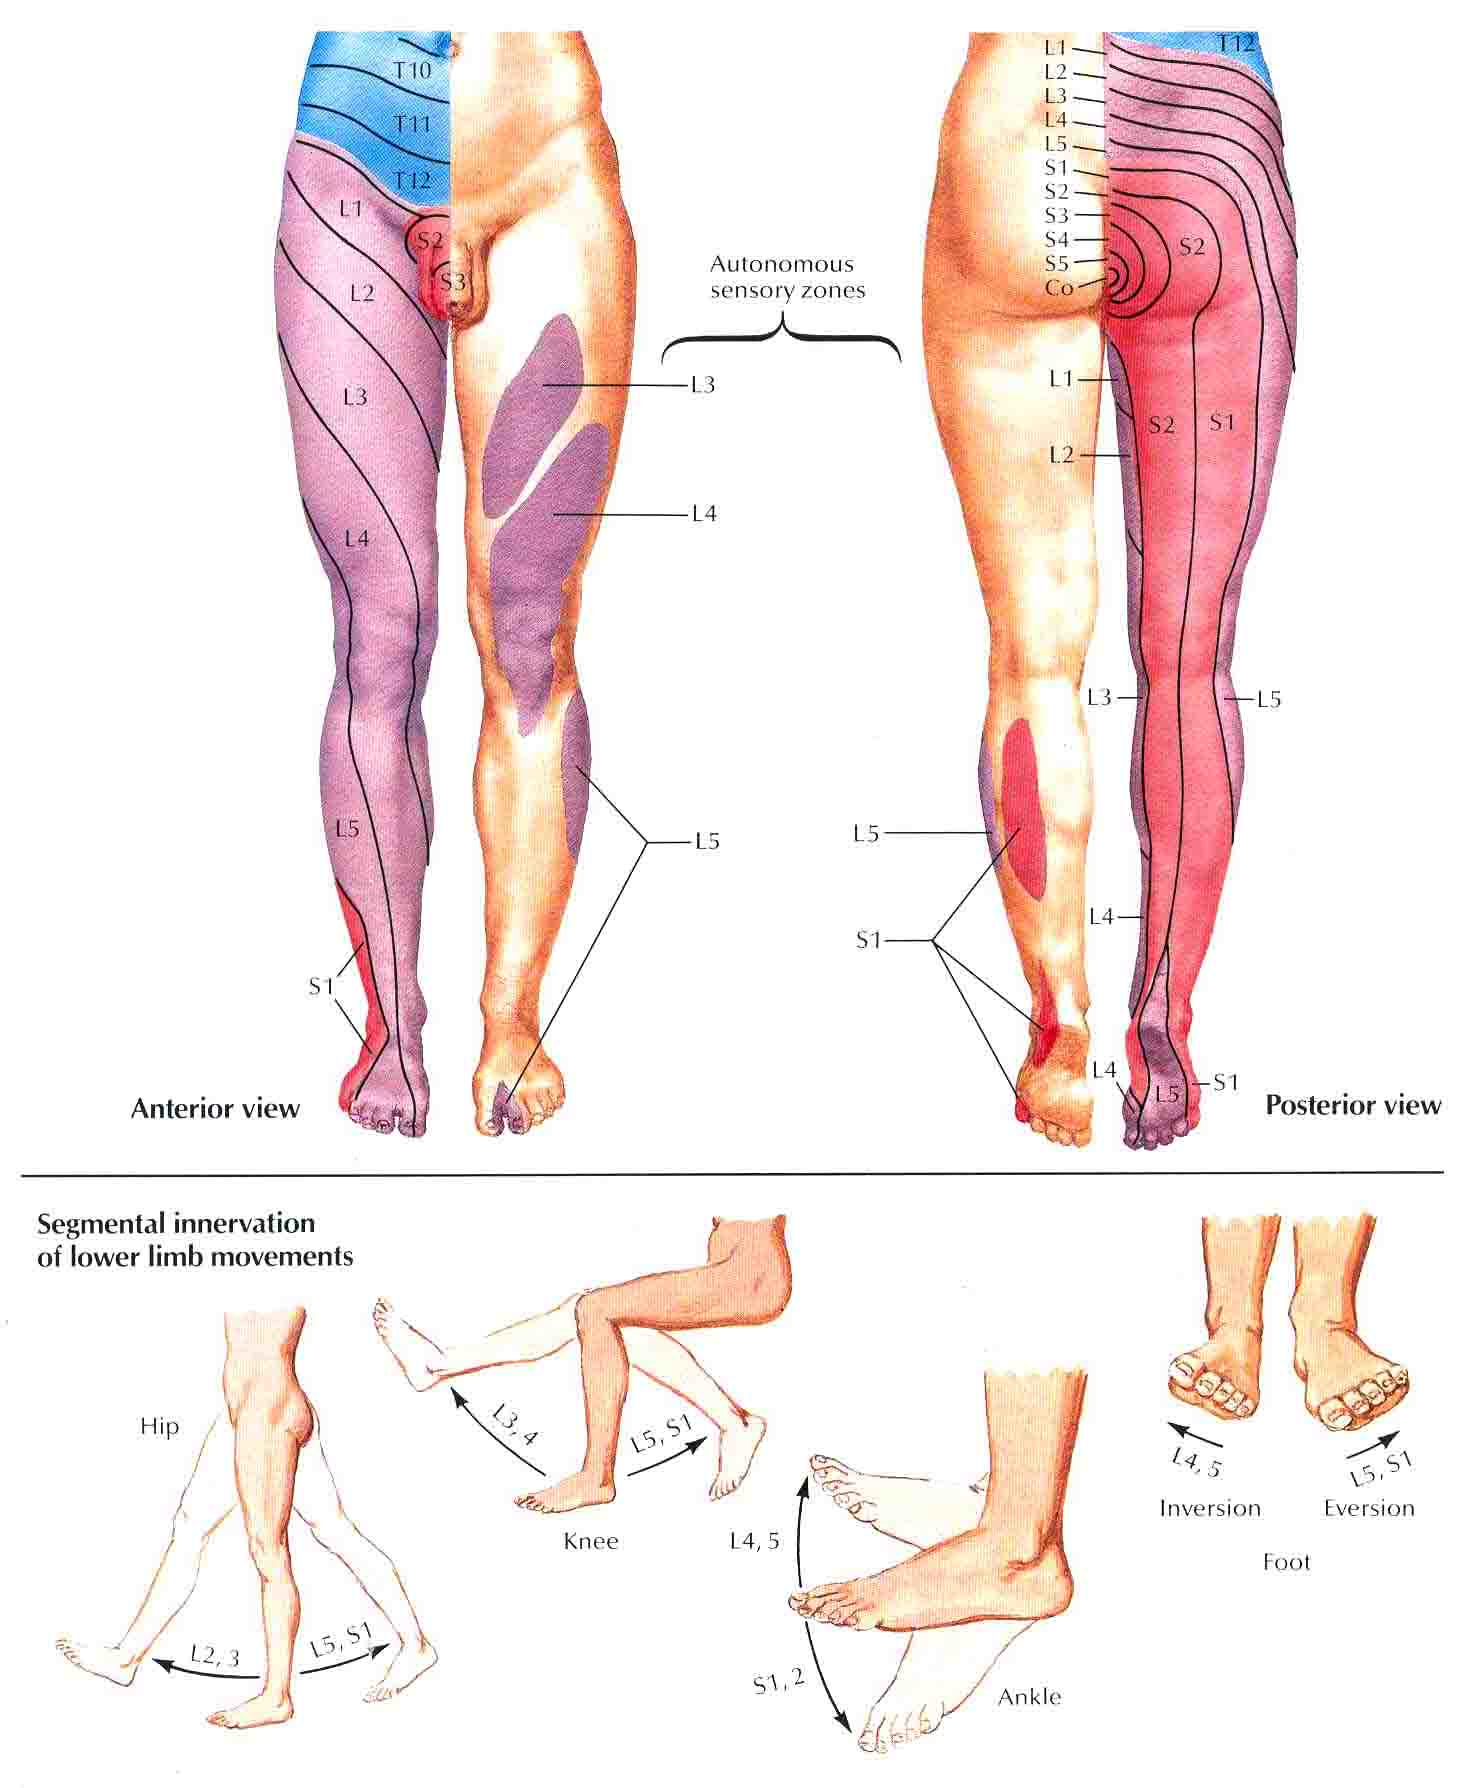 Dermatome Map http://bedahunmuh.wordpress.com/2010/05/14/dermatome-of-lower-limb/